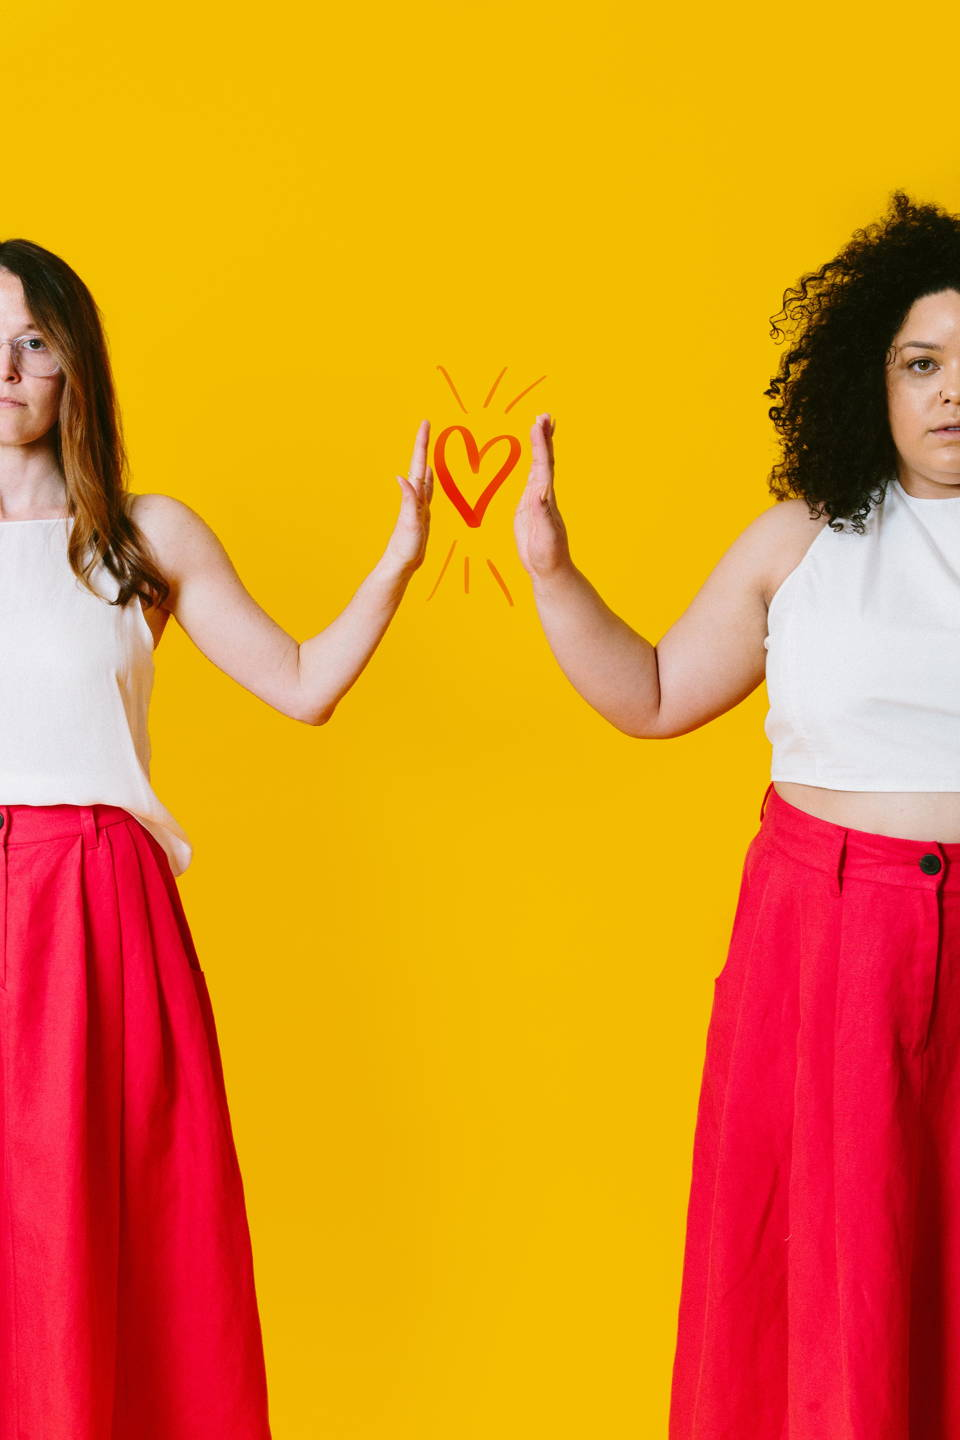 two women wear matching red floor-length skirts and white tank tops. They are standing in front of a yellow background, and each has one hand held up mirroring the other woman. there is a red heart drawn between.